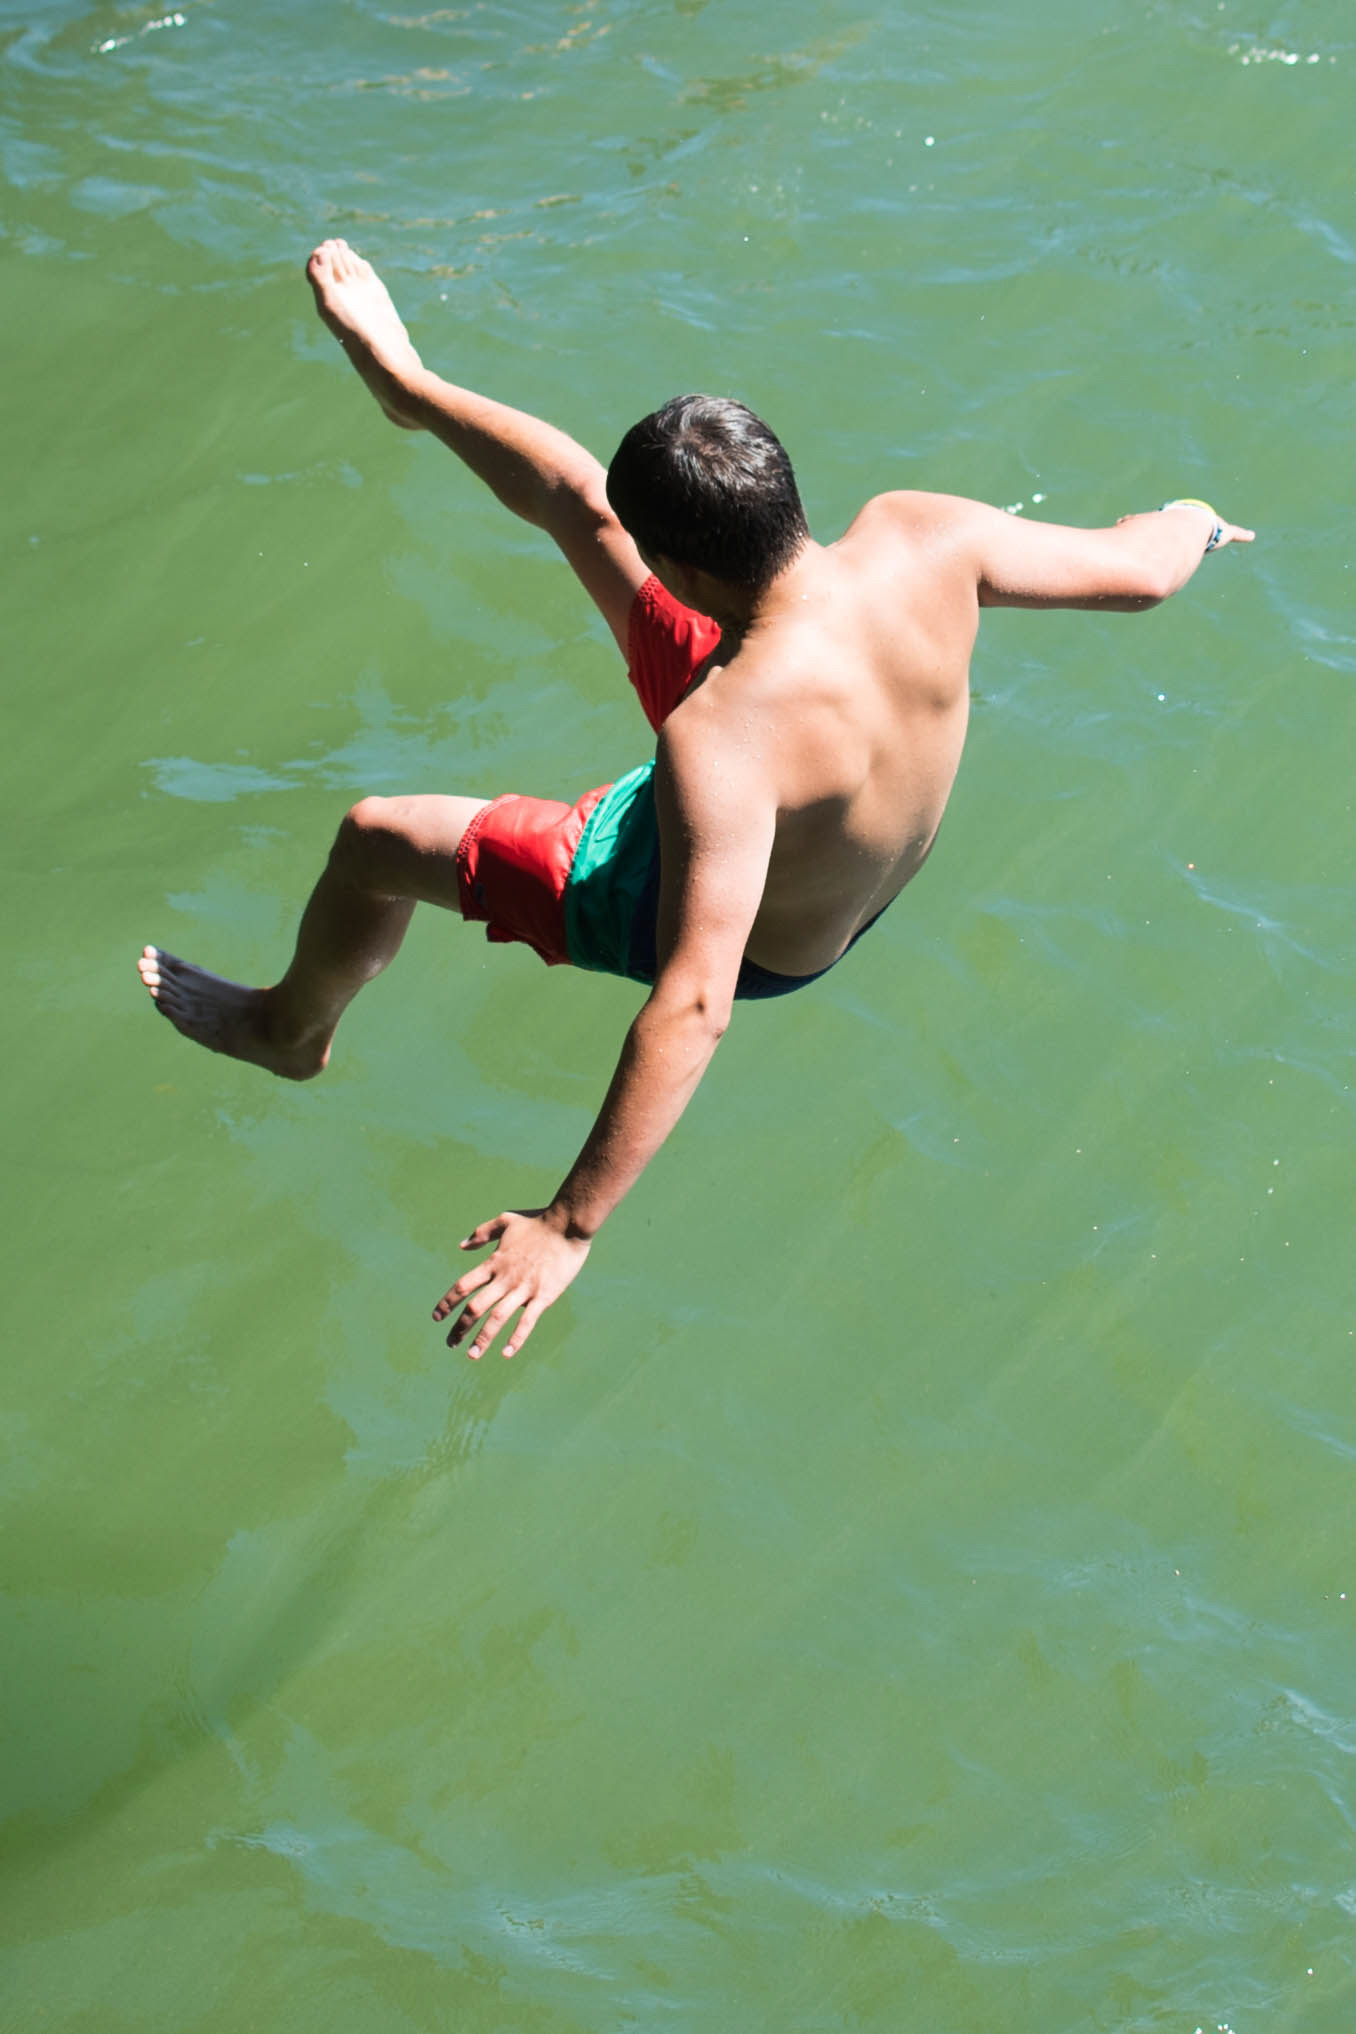 Man jumping in the water, jumping off cliff